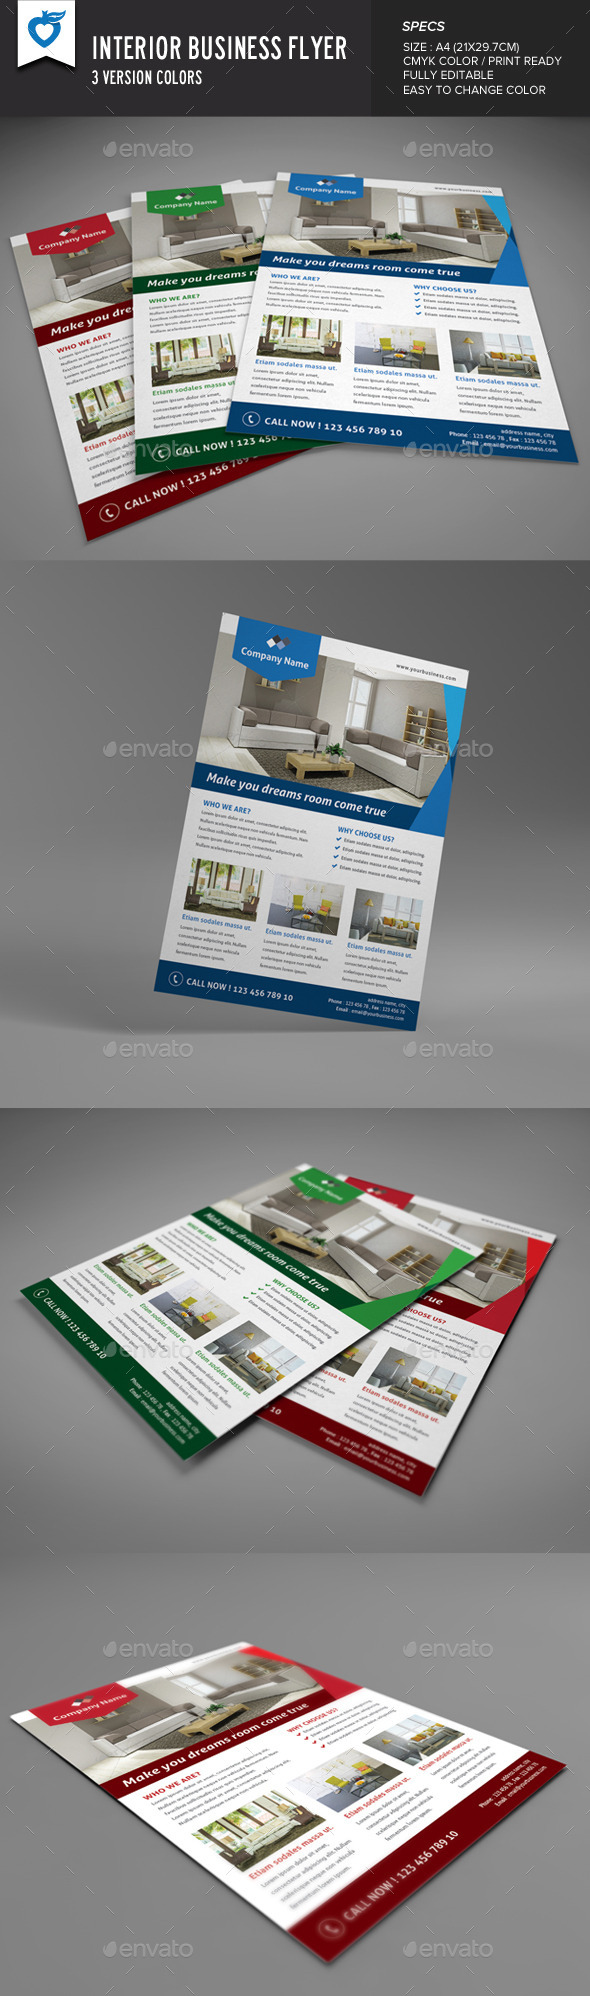 Interior Business Flyer - Corporate Flyers